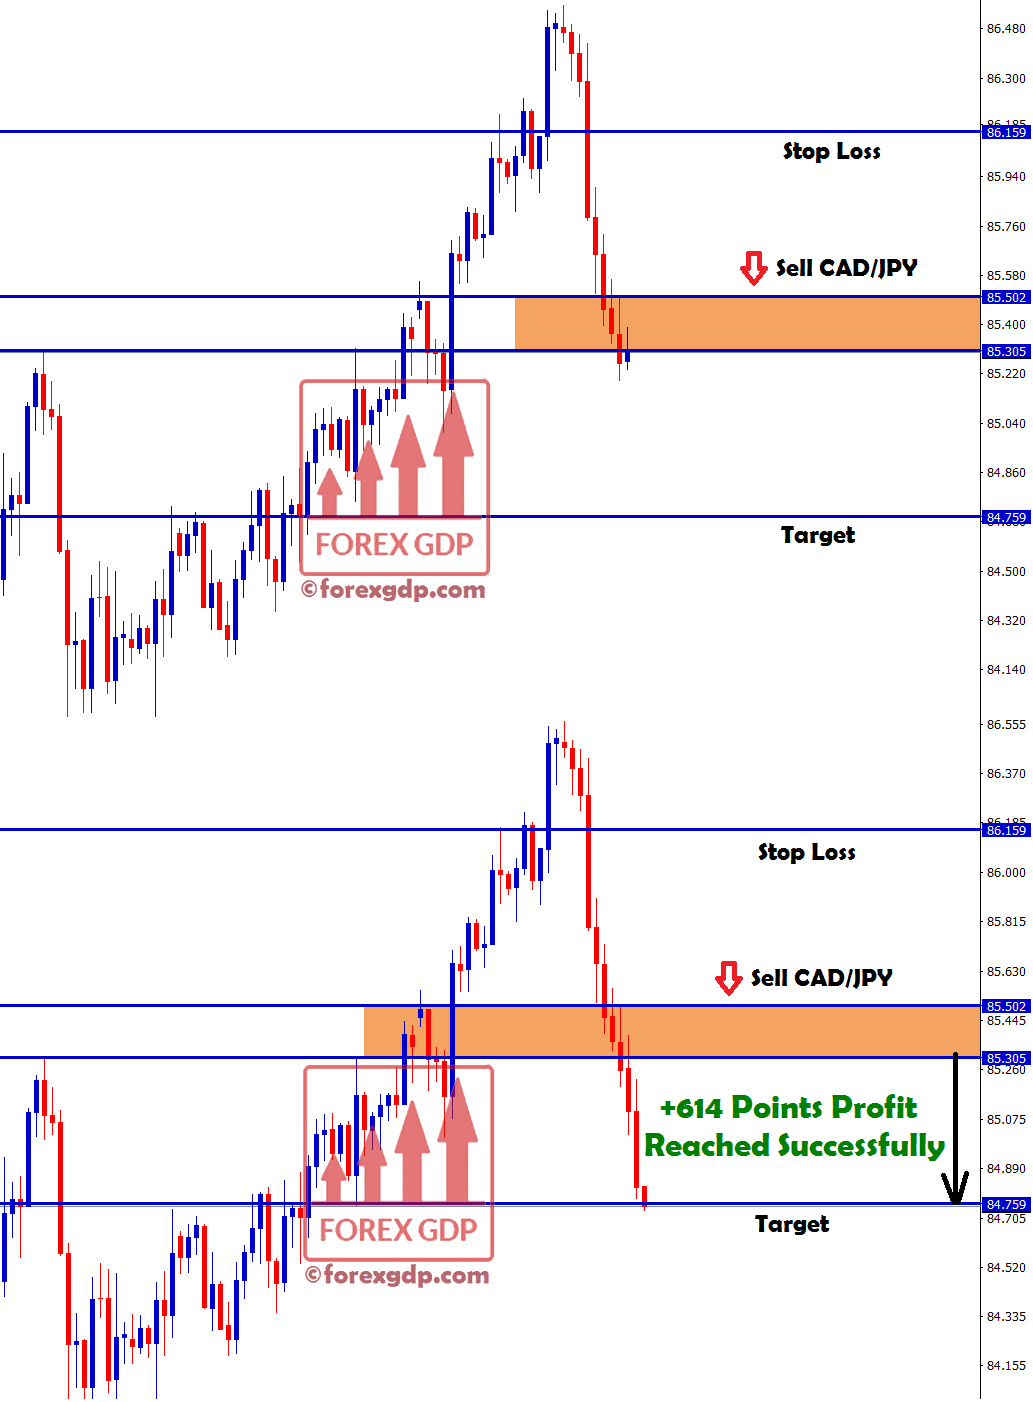 cadjpy sell signal reached target